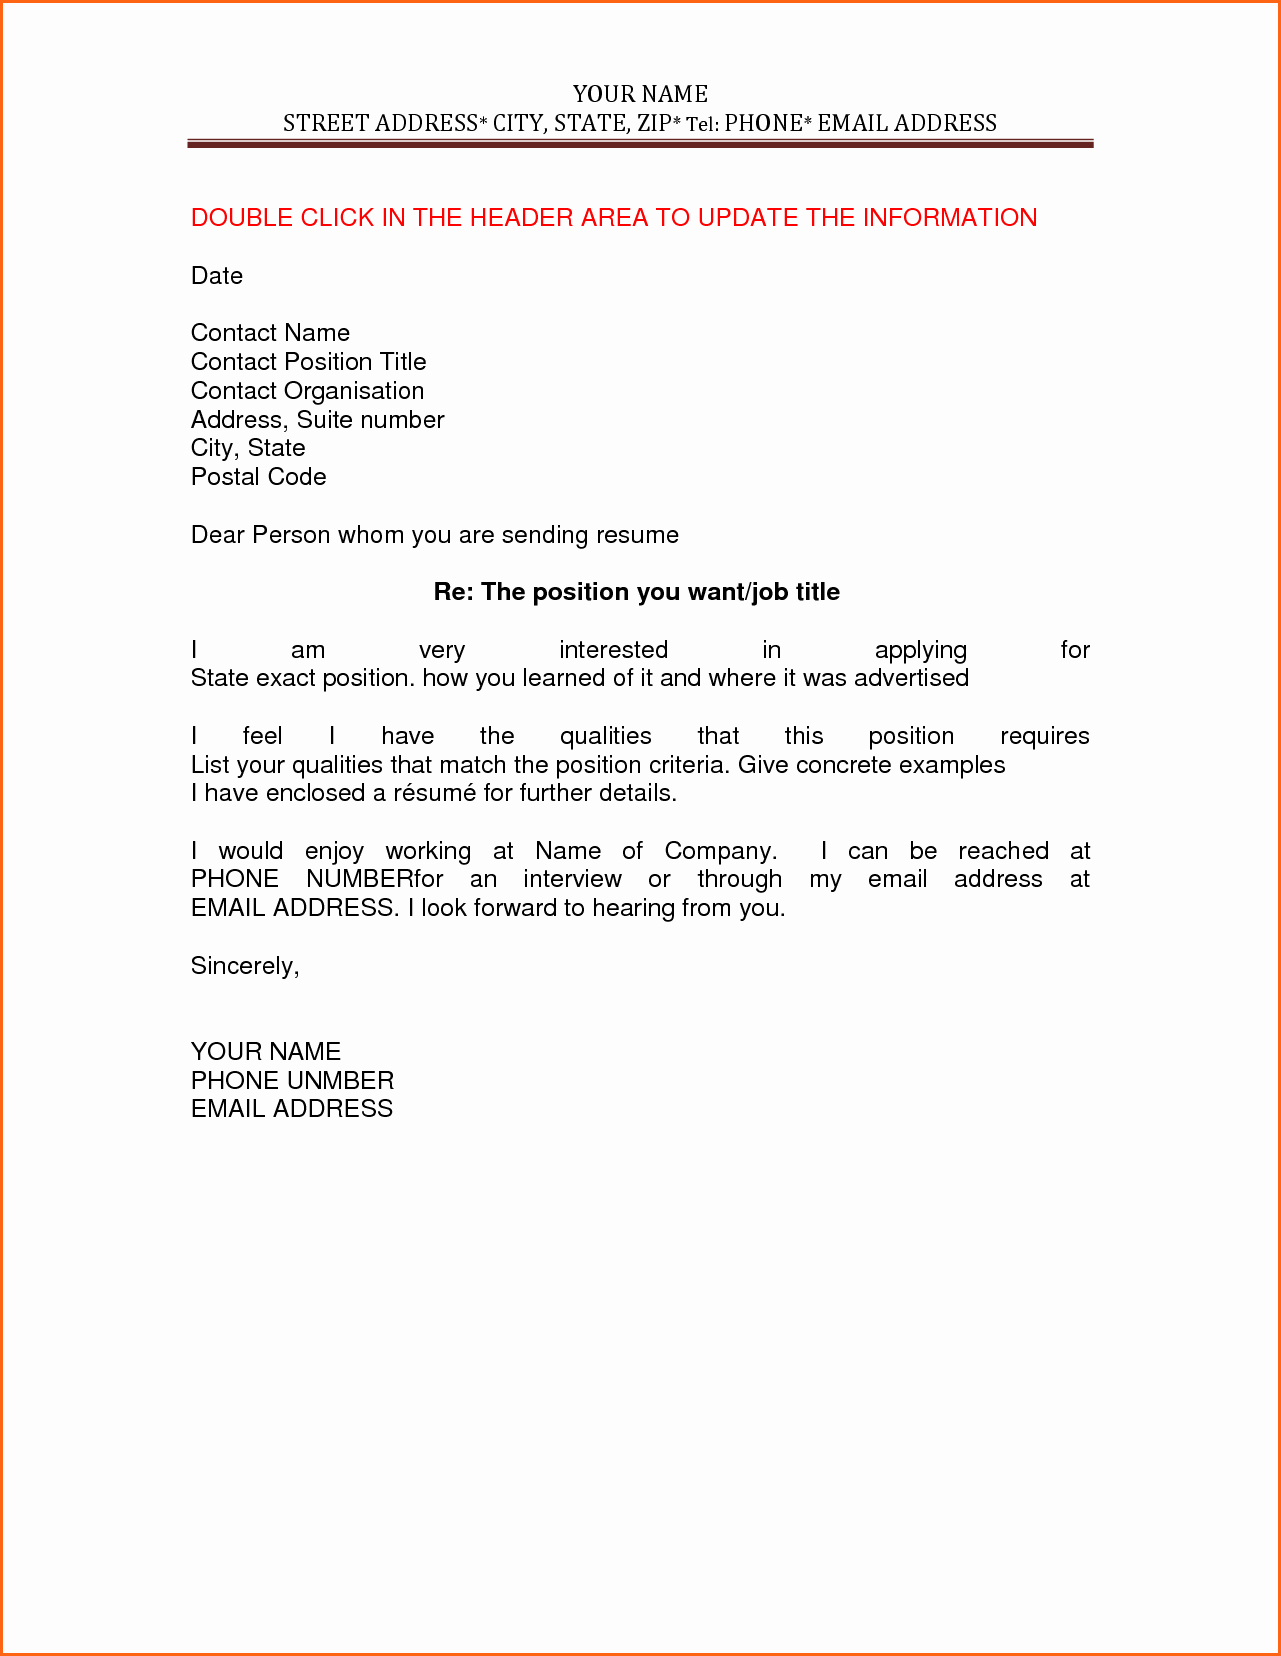 Resume and Cover Letter Templates Luxury 12 Resume and Cover Letter Template Bud Template Letter